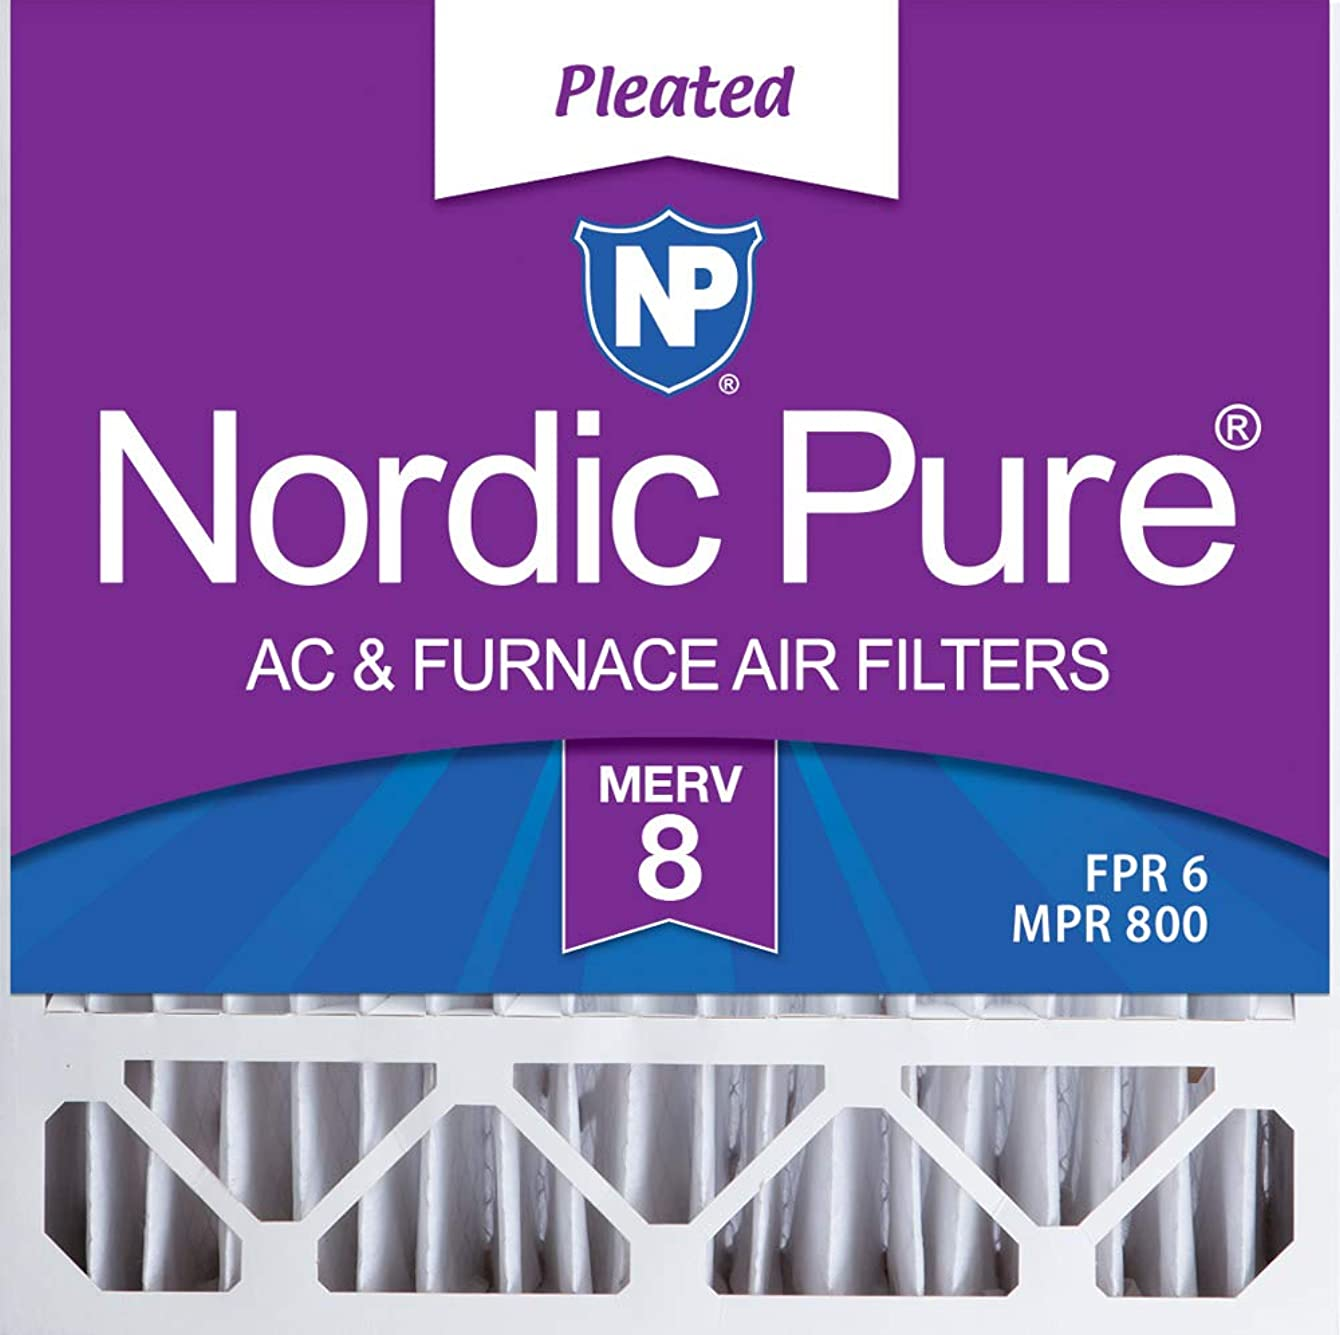 Nordic Pure 20x20x5 (4-3/8 Actual Depth) MERV 8 Honeywell Replacement Pleated AC Furnace Air Filter, Box of 1